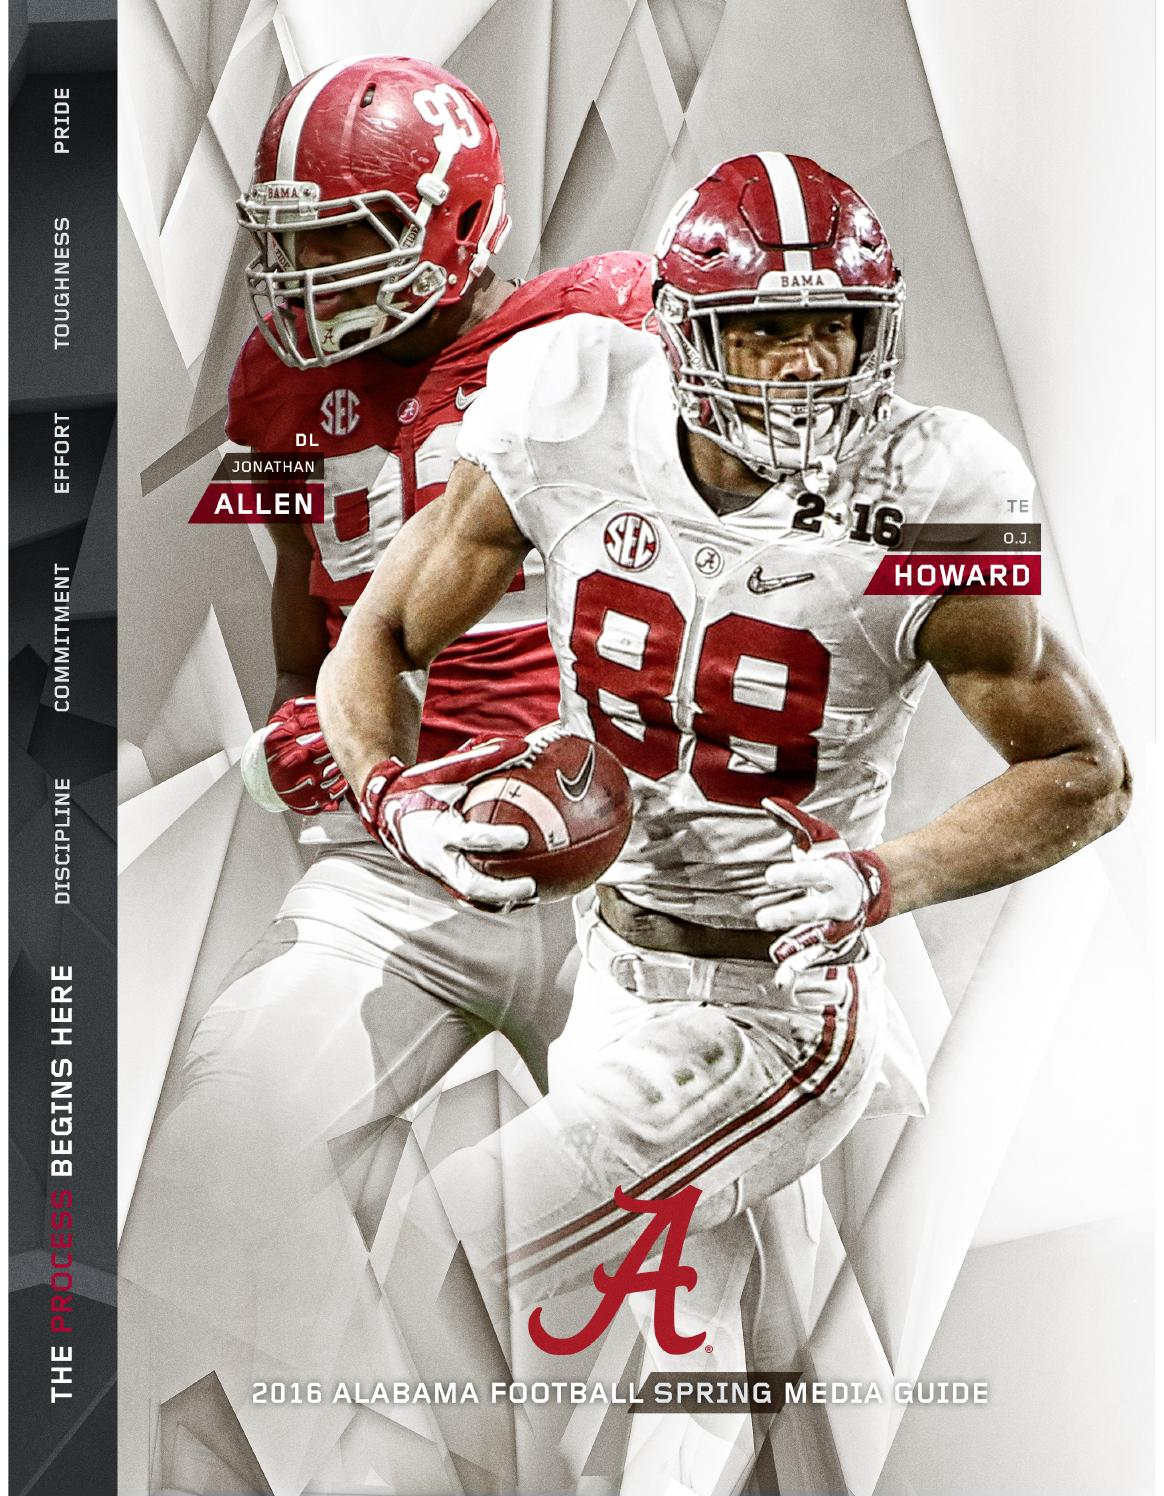 2014 Alabama Football Media Guide by Alabama Crimson Tide - issuu